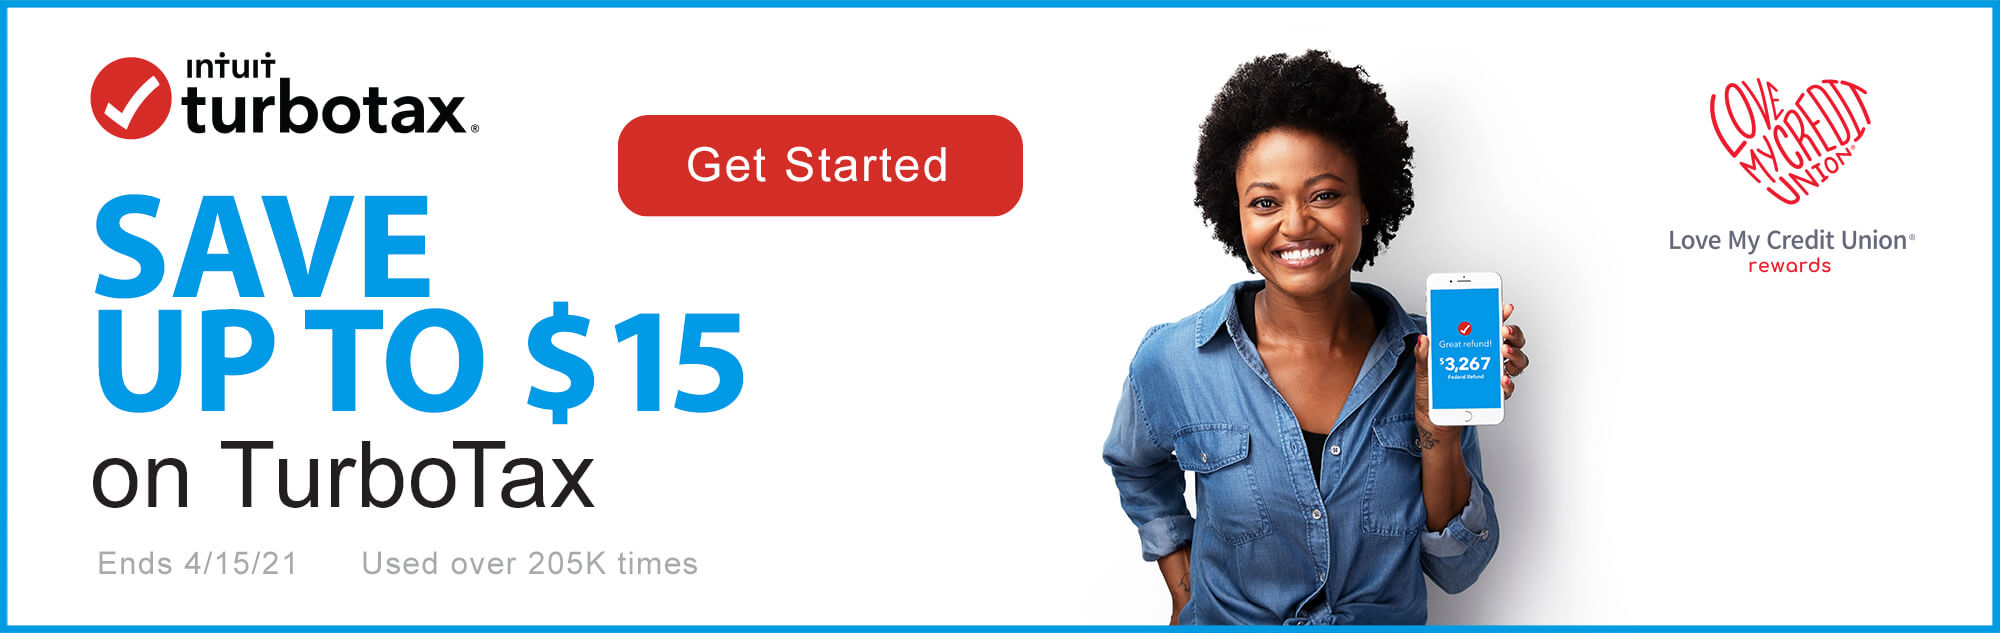 You could save up to $15 with TurboTax!